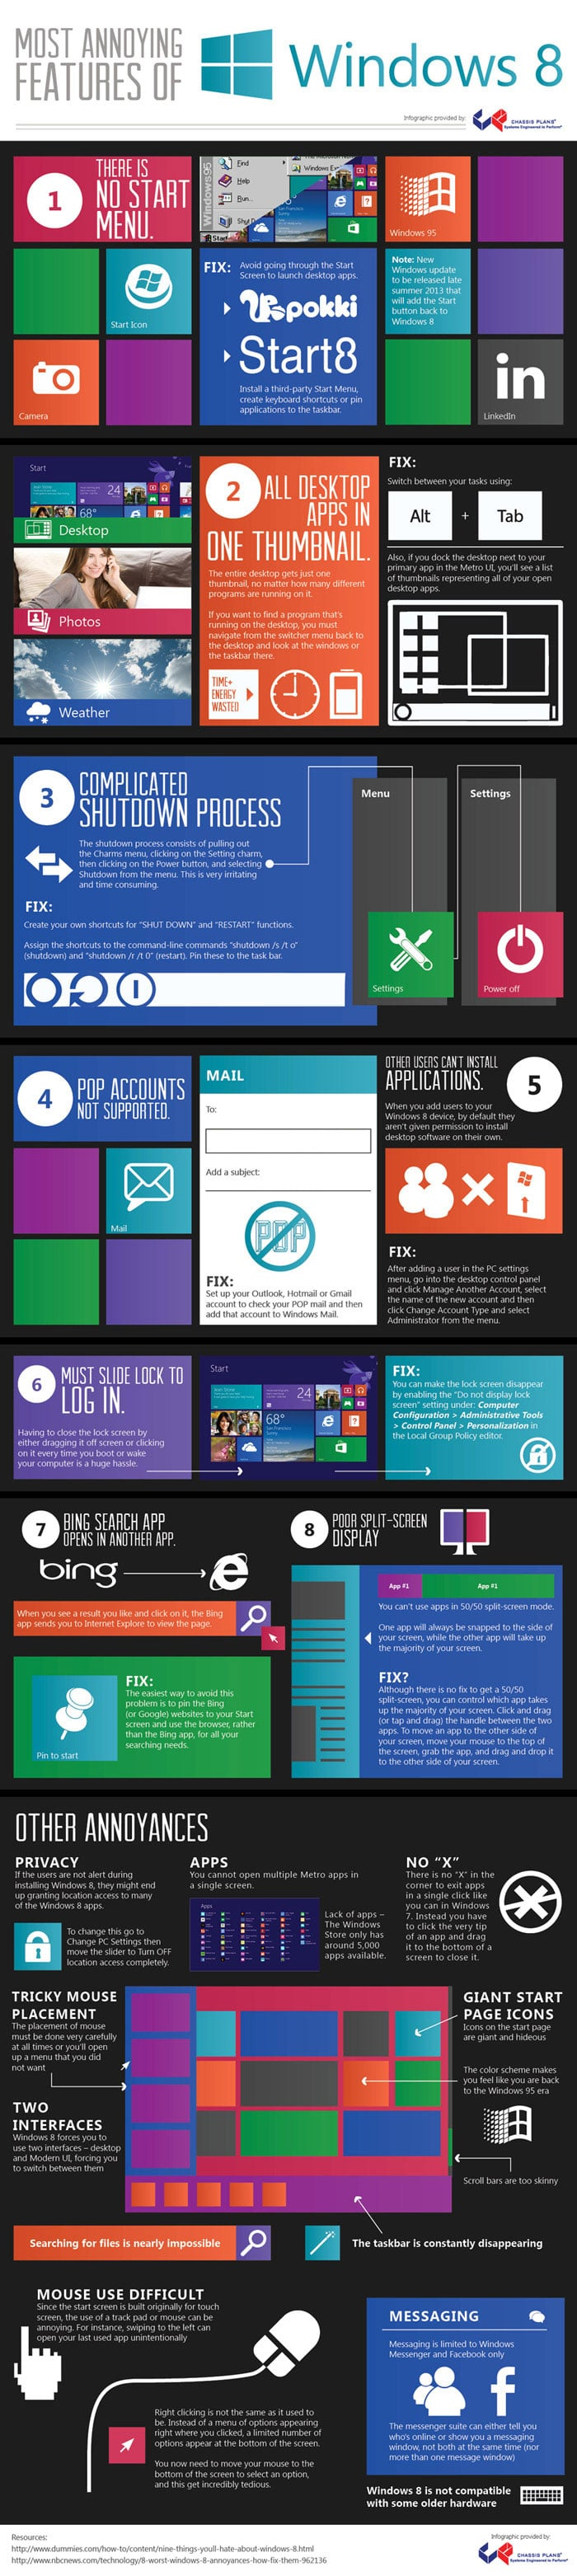 Most Annoying Things About Windows 8 & How To Fix Them [Infographic]